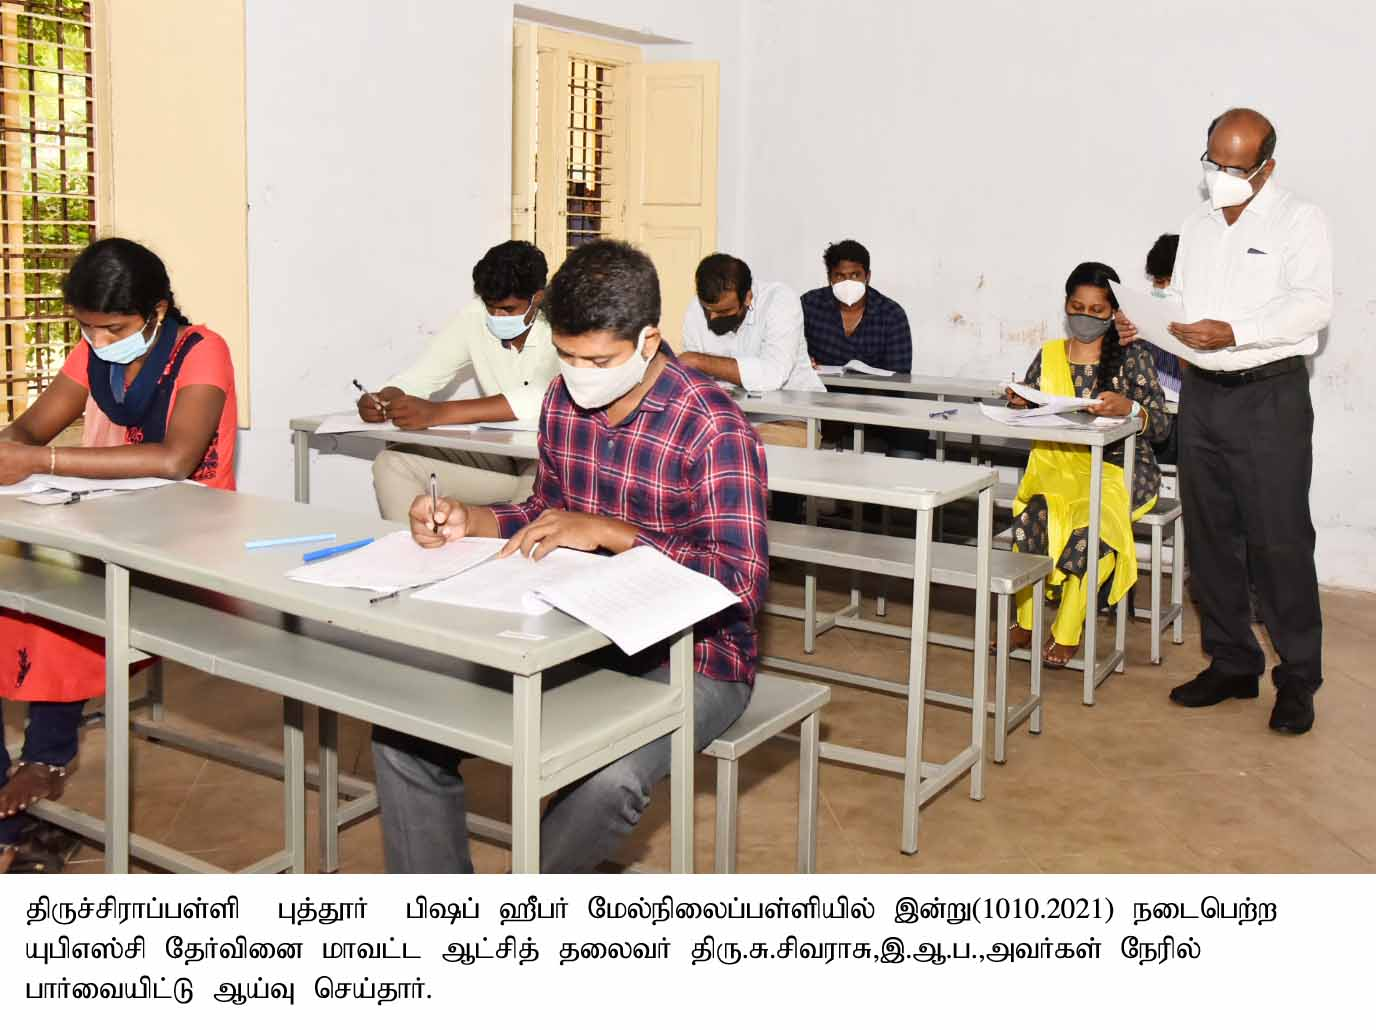 District Collector Inspected UPSC Examinationss Center held on 10.10.2021